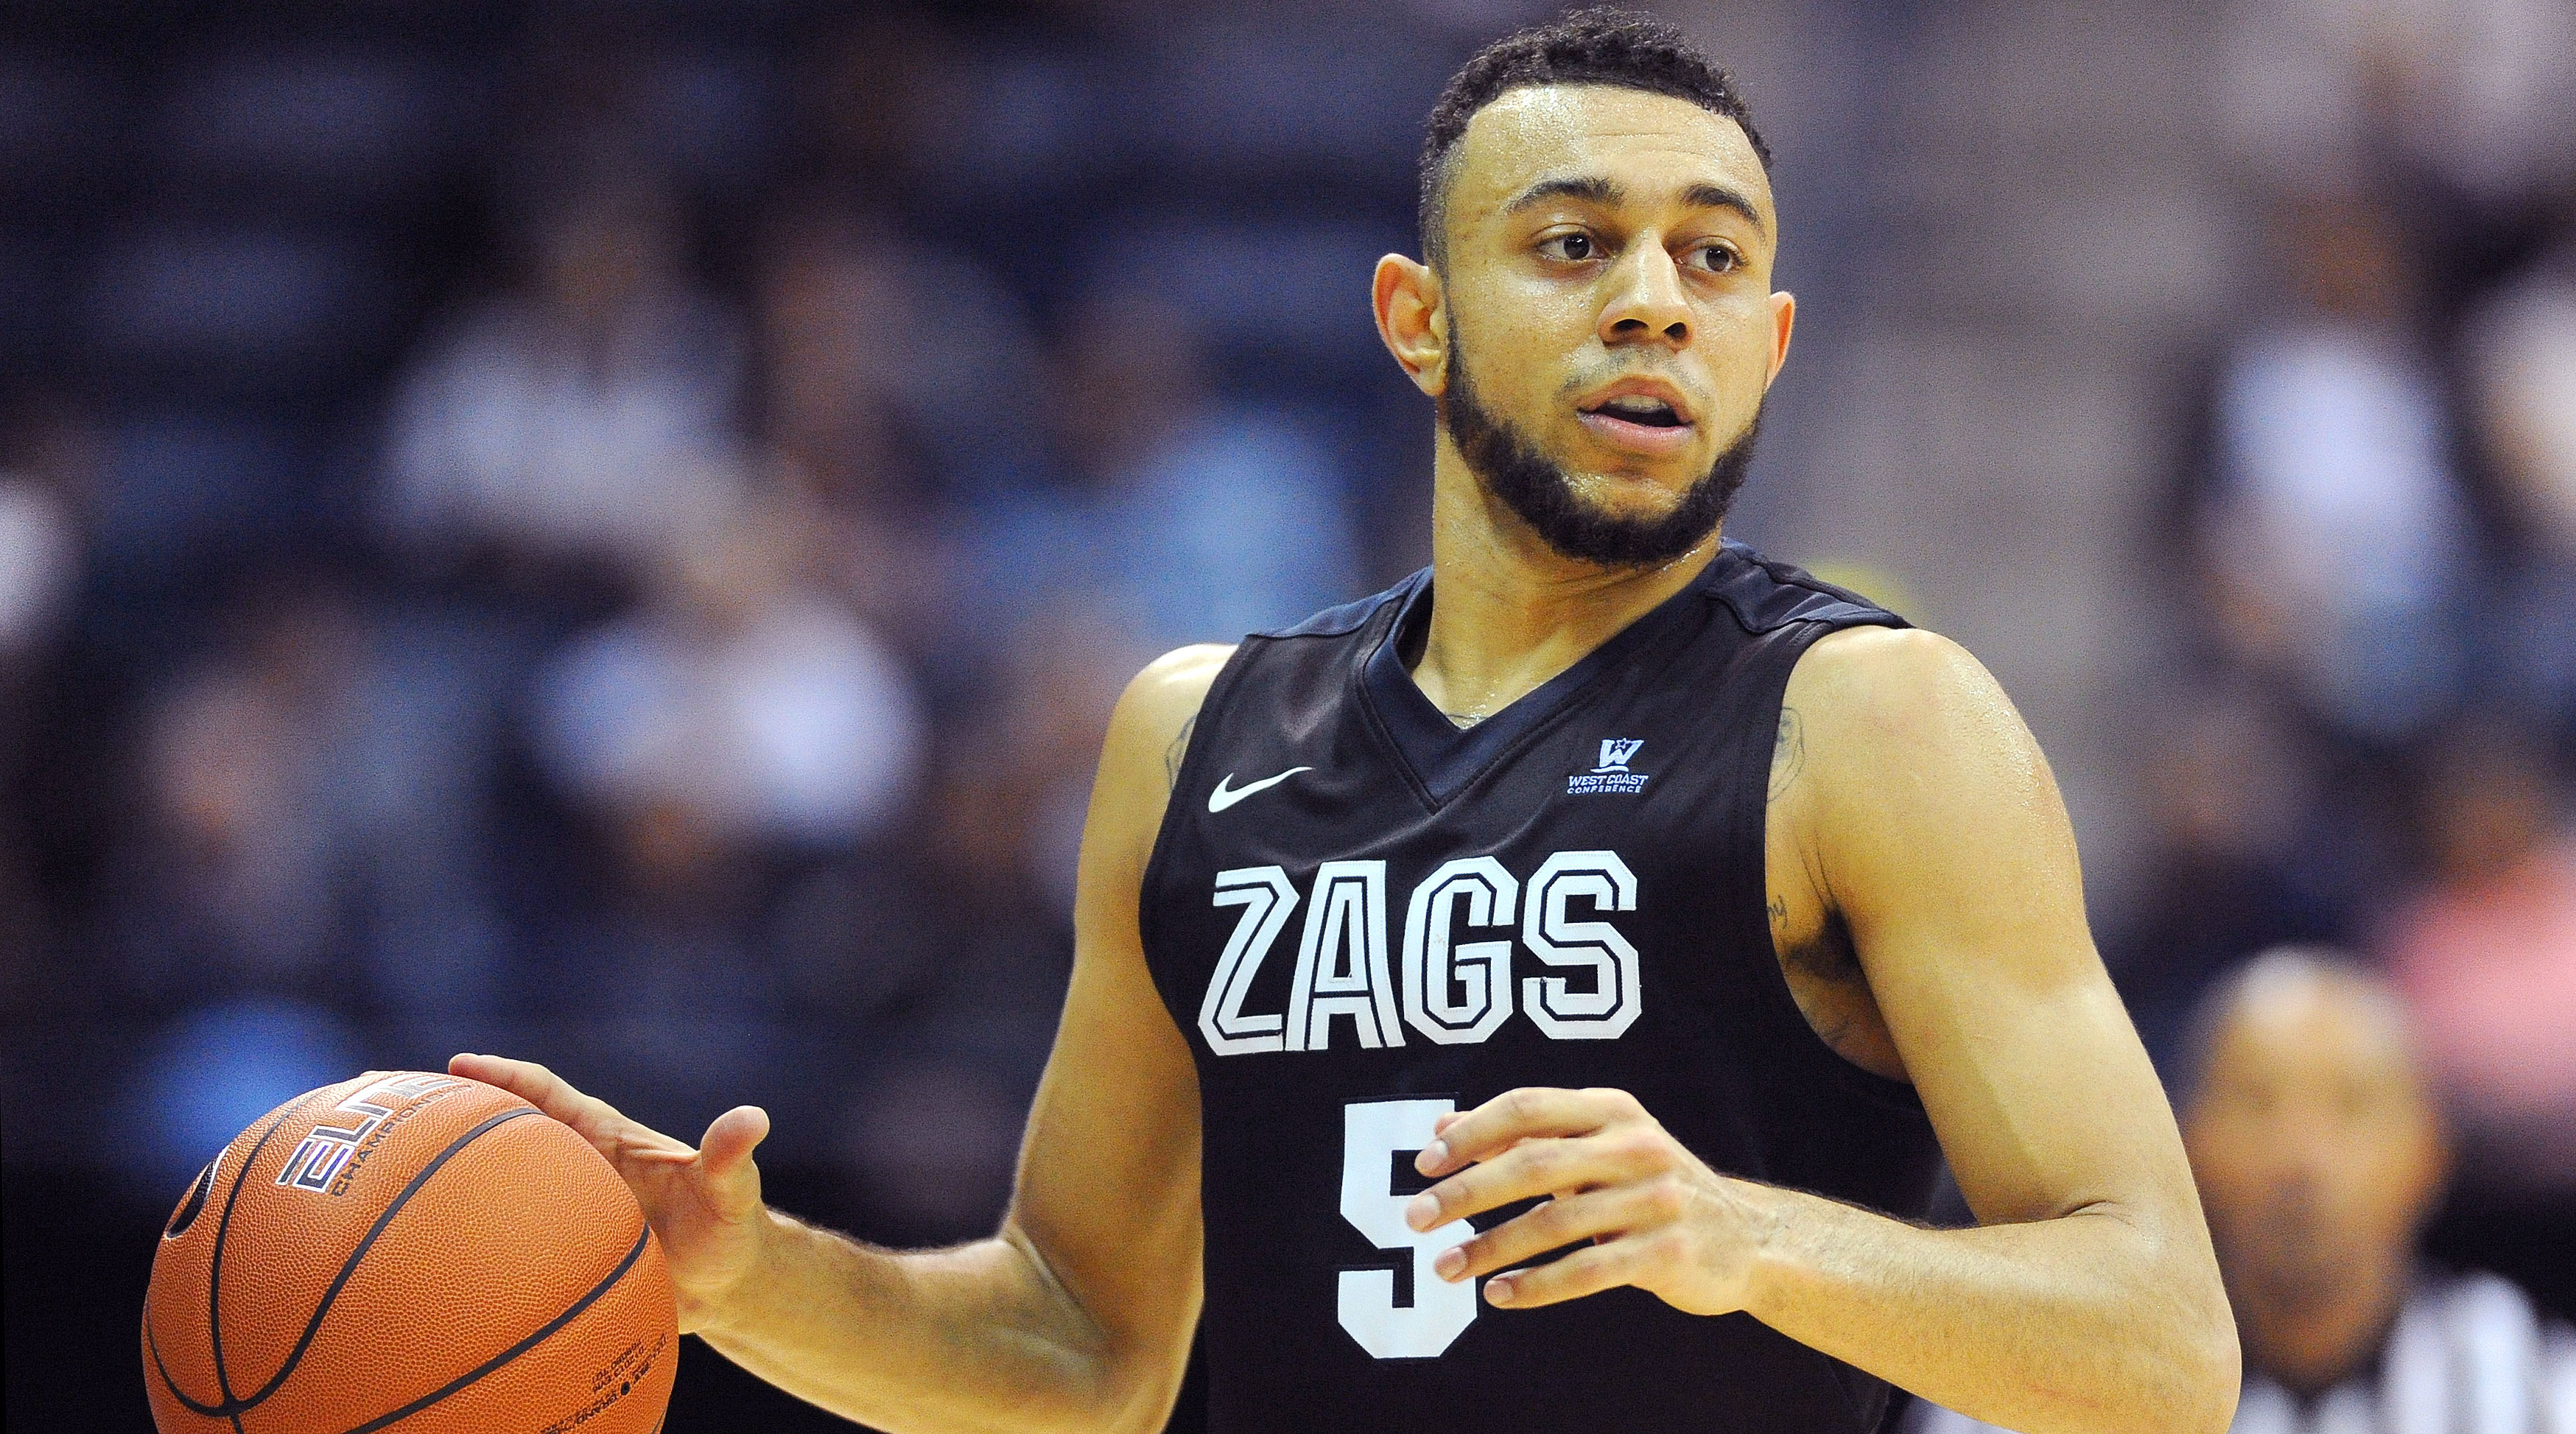 https://cdn-s3.si.com/s3fs-public/2017/03/14/nigel-williams-goss-ncaa-tournament-gonzaga.jpg